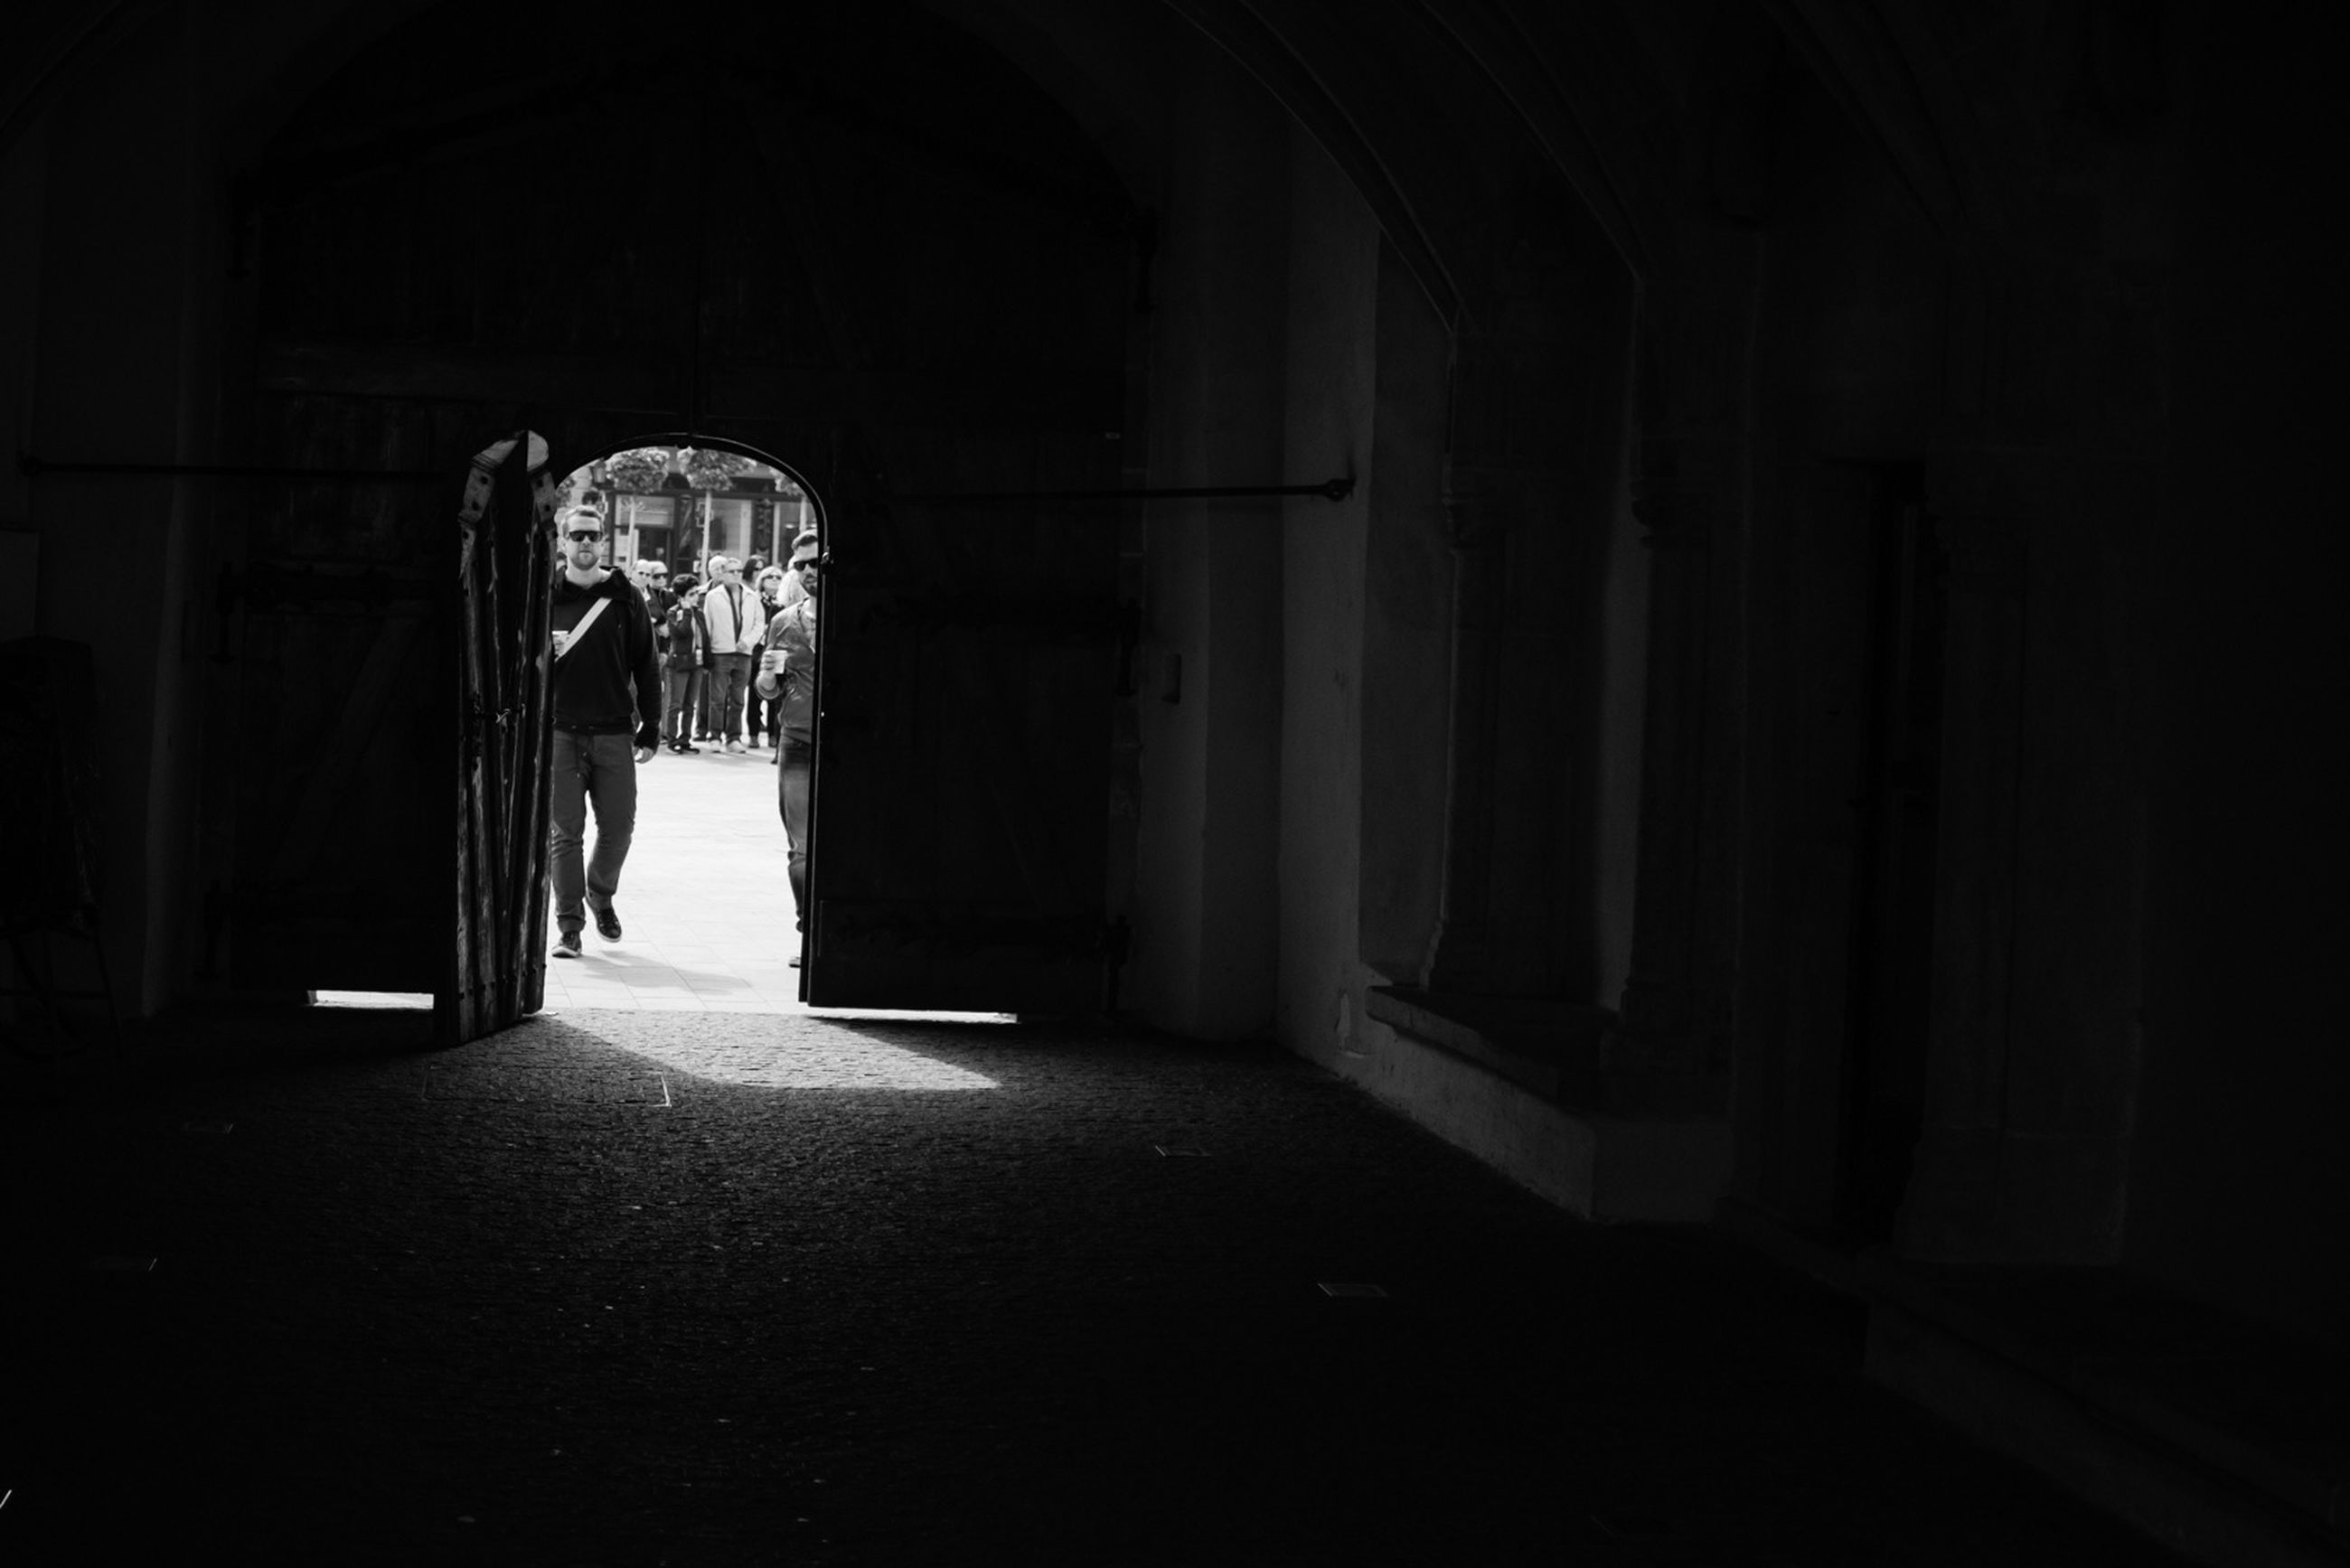 architecture, indoors, built structure, arch, corridor, the way forward, entrance, door, building exterior, architectural column, night, building, empty, place of worship, illuminated, doorway, history, flooring, spirituality